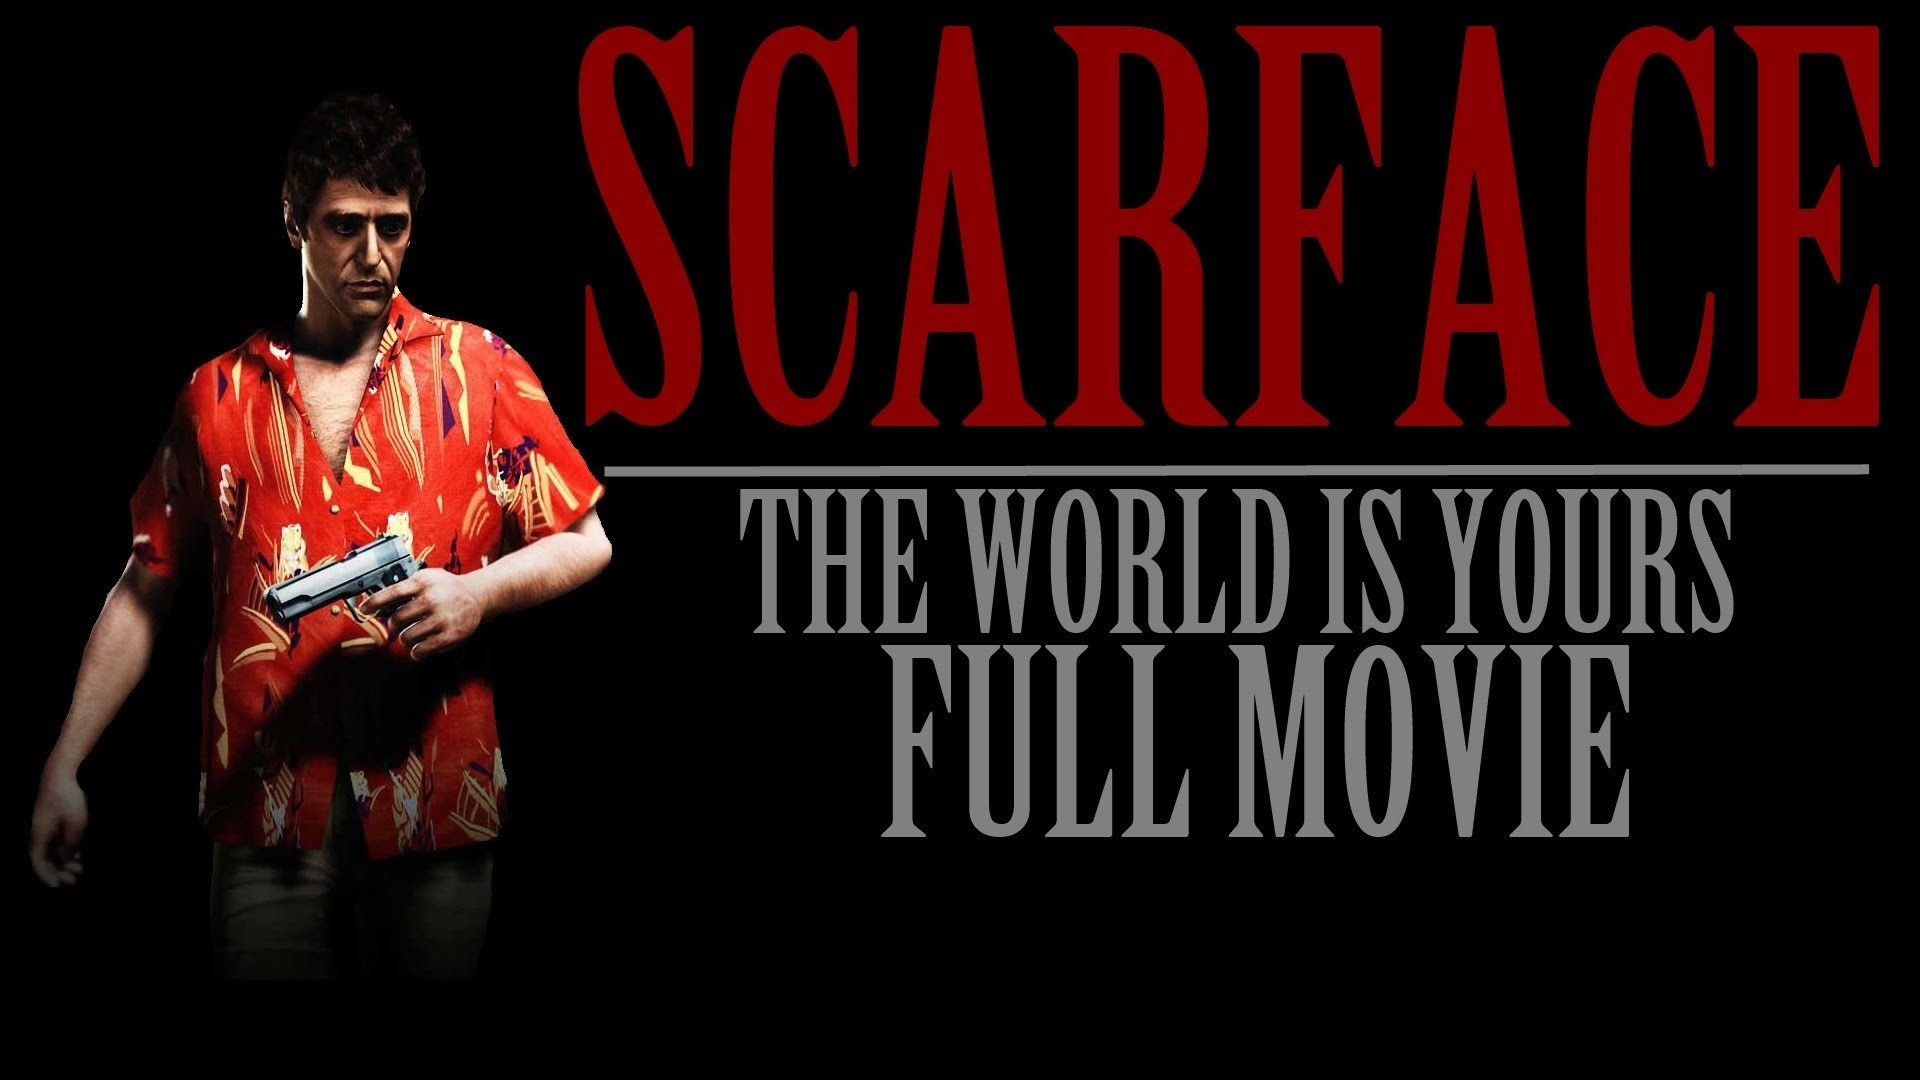 Patch Scarface The World Is